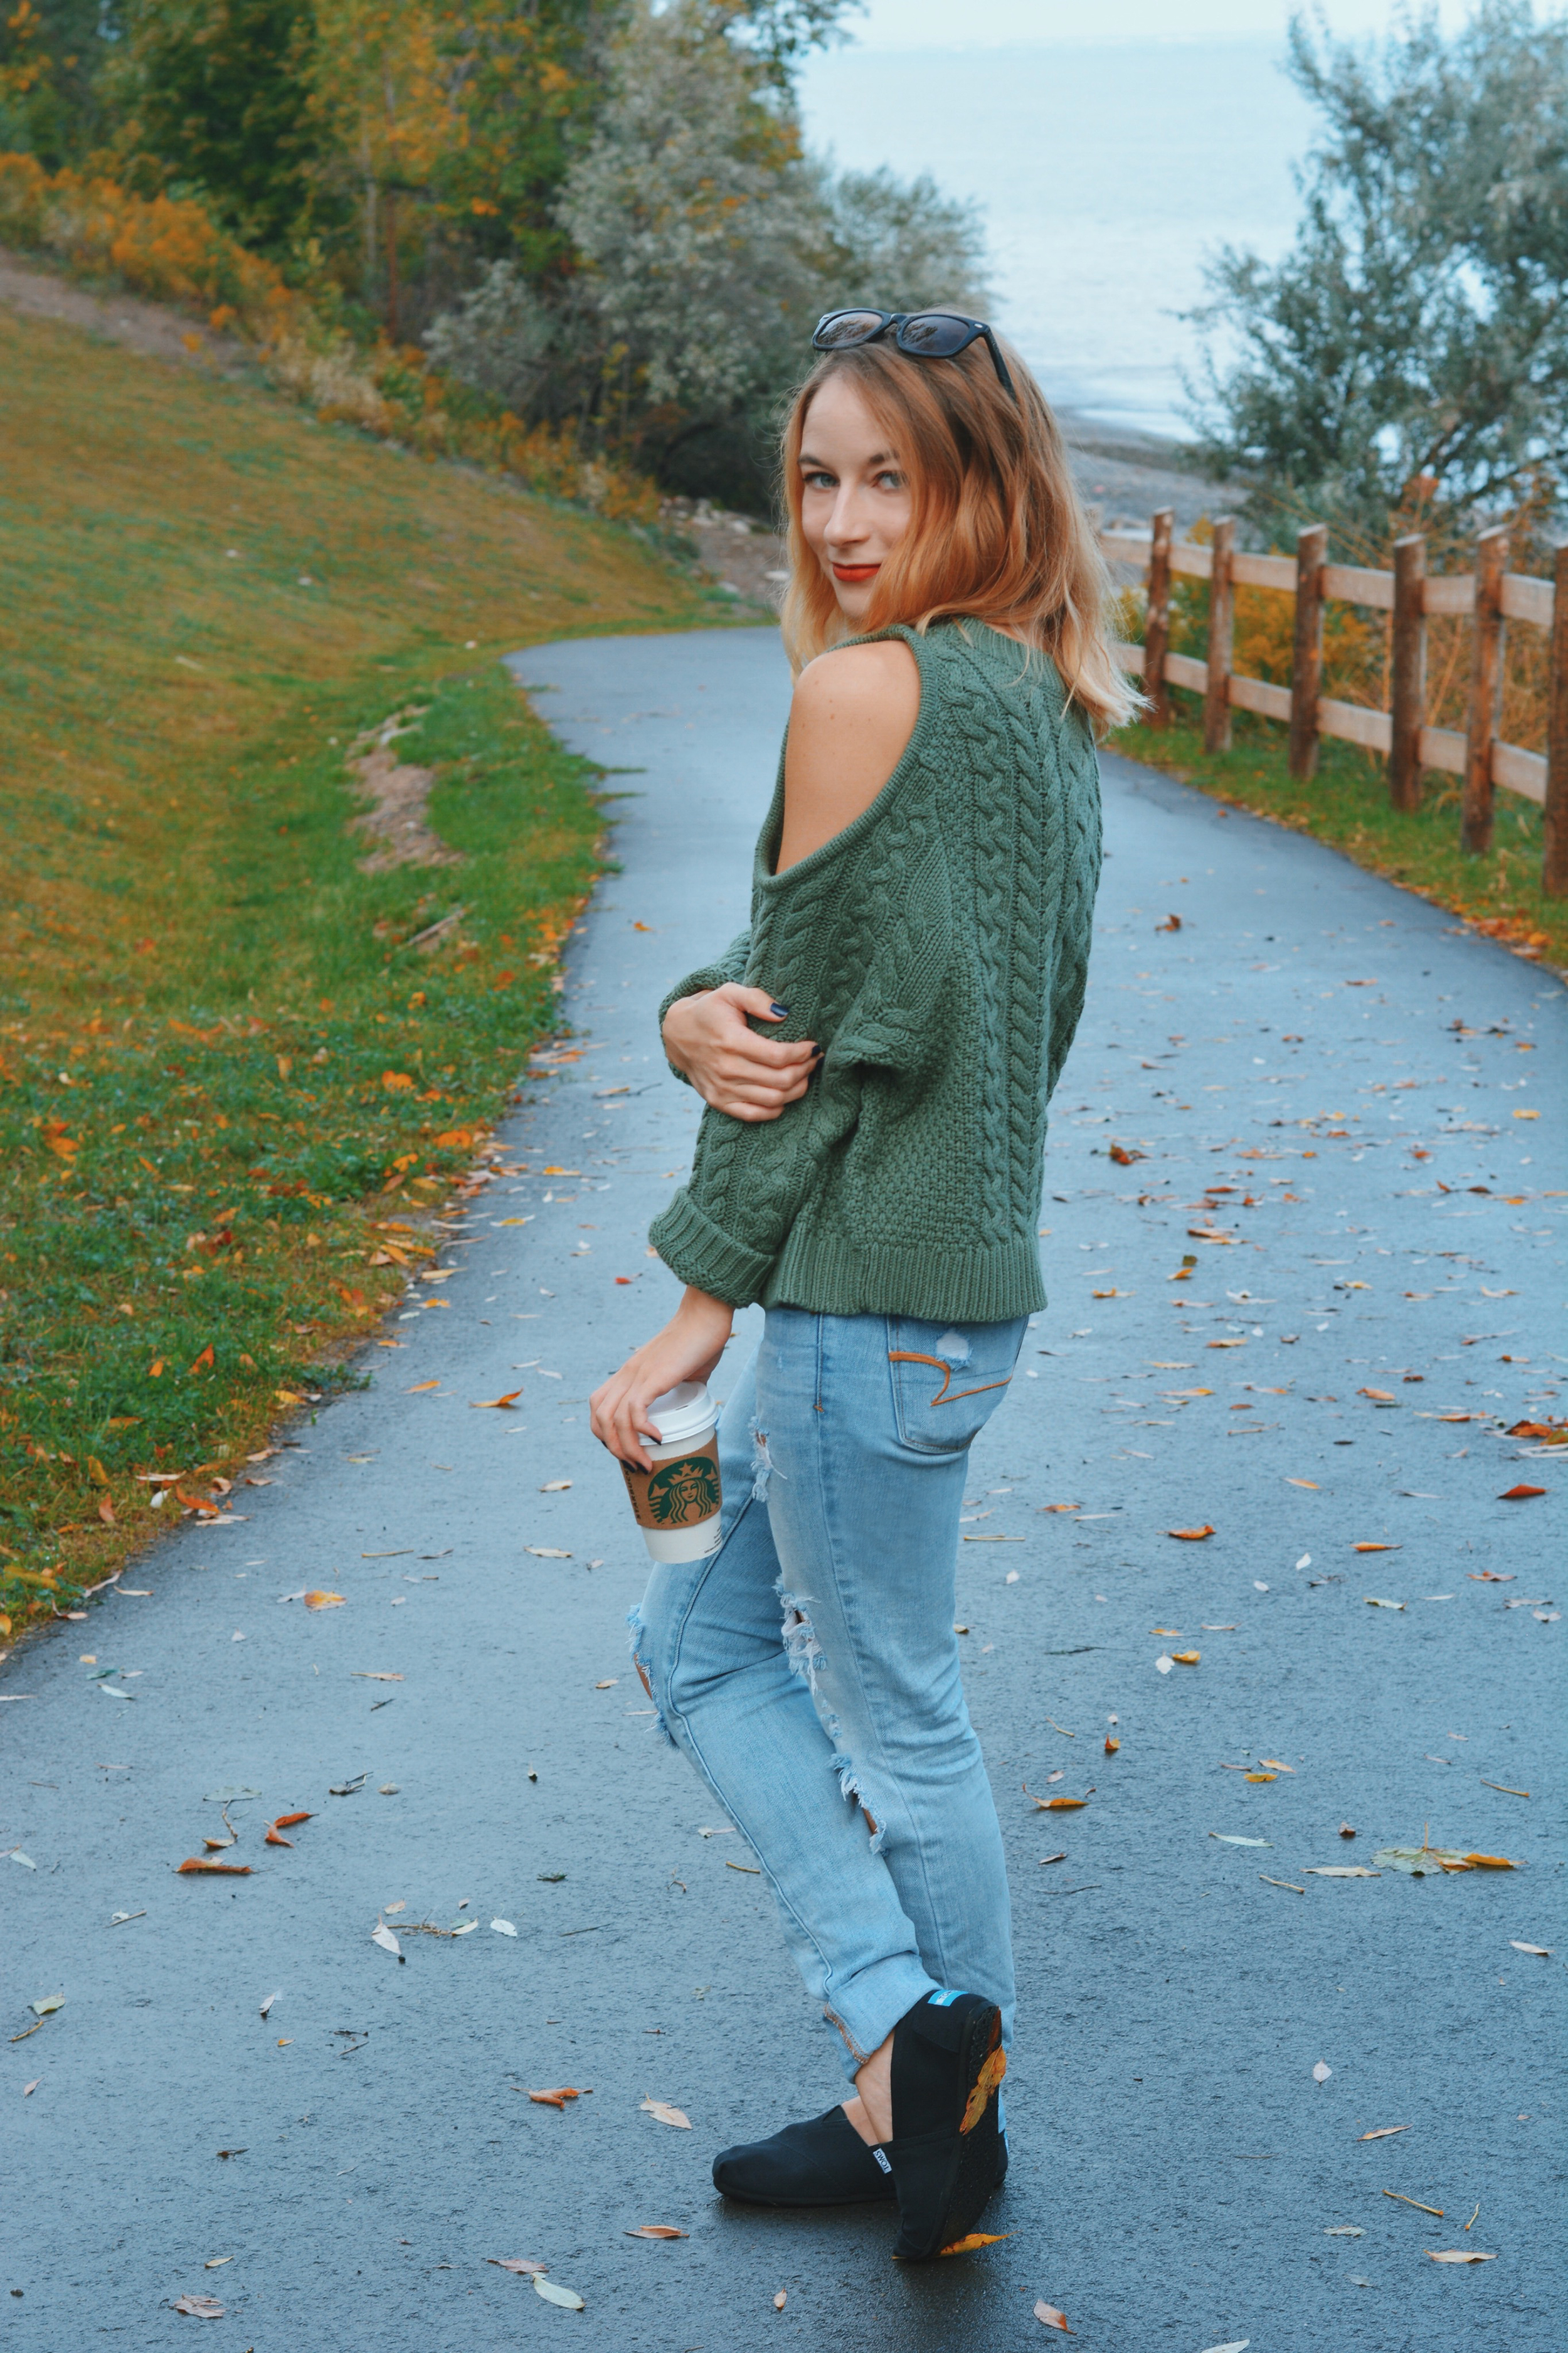 OOTD: Aerie Sweater Weather